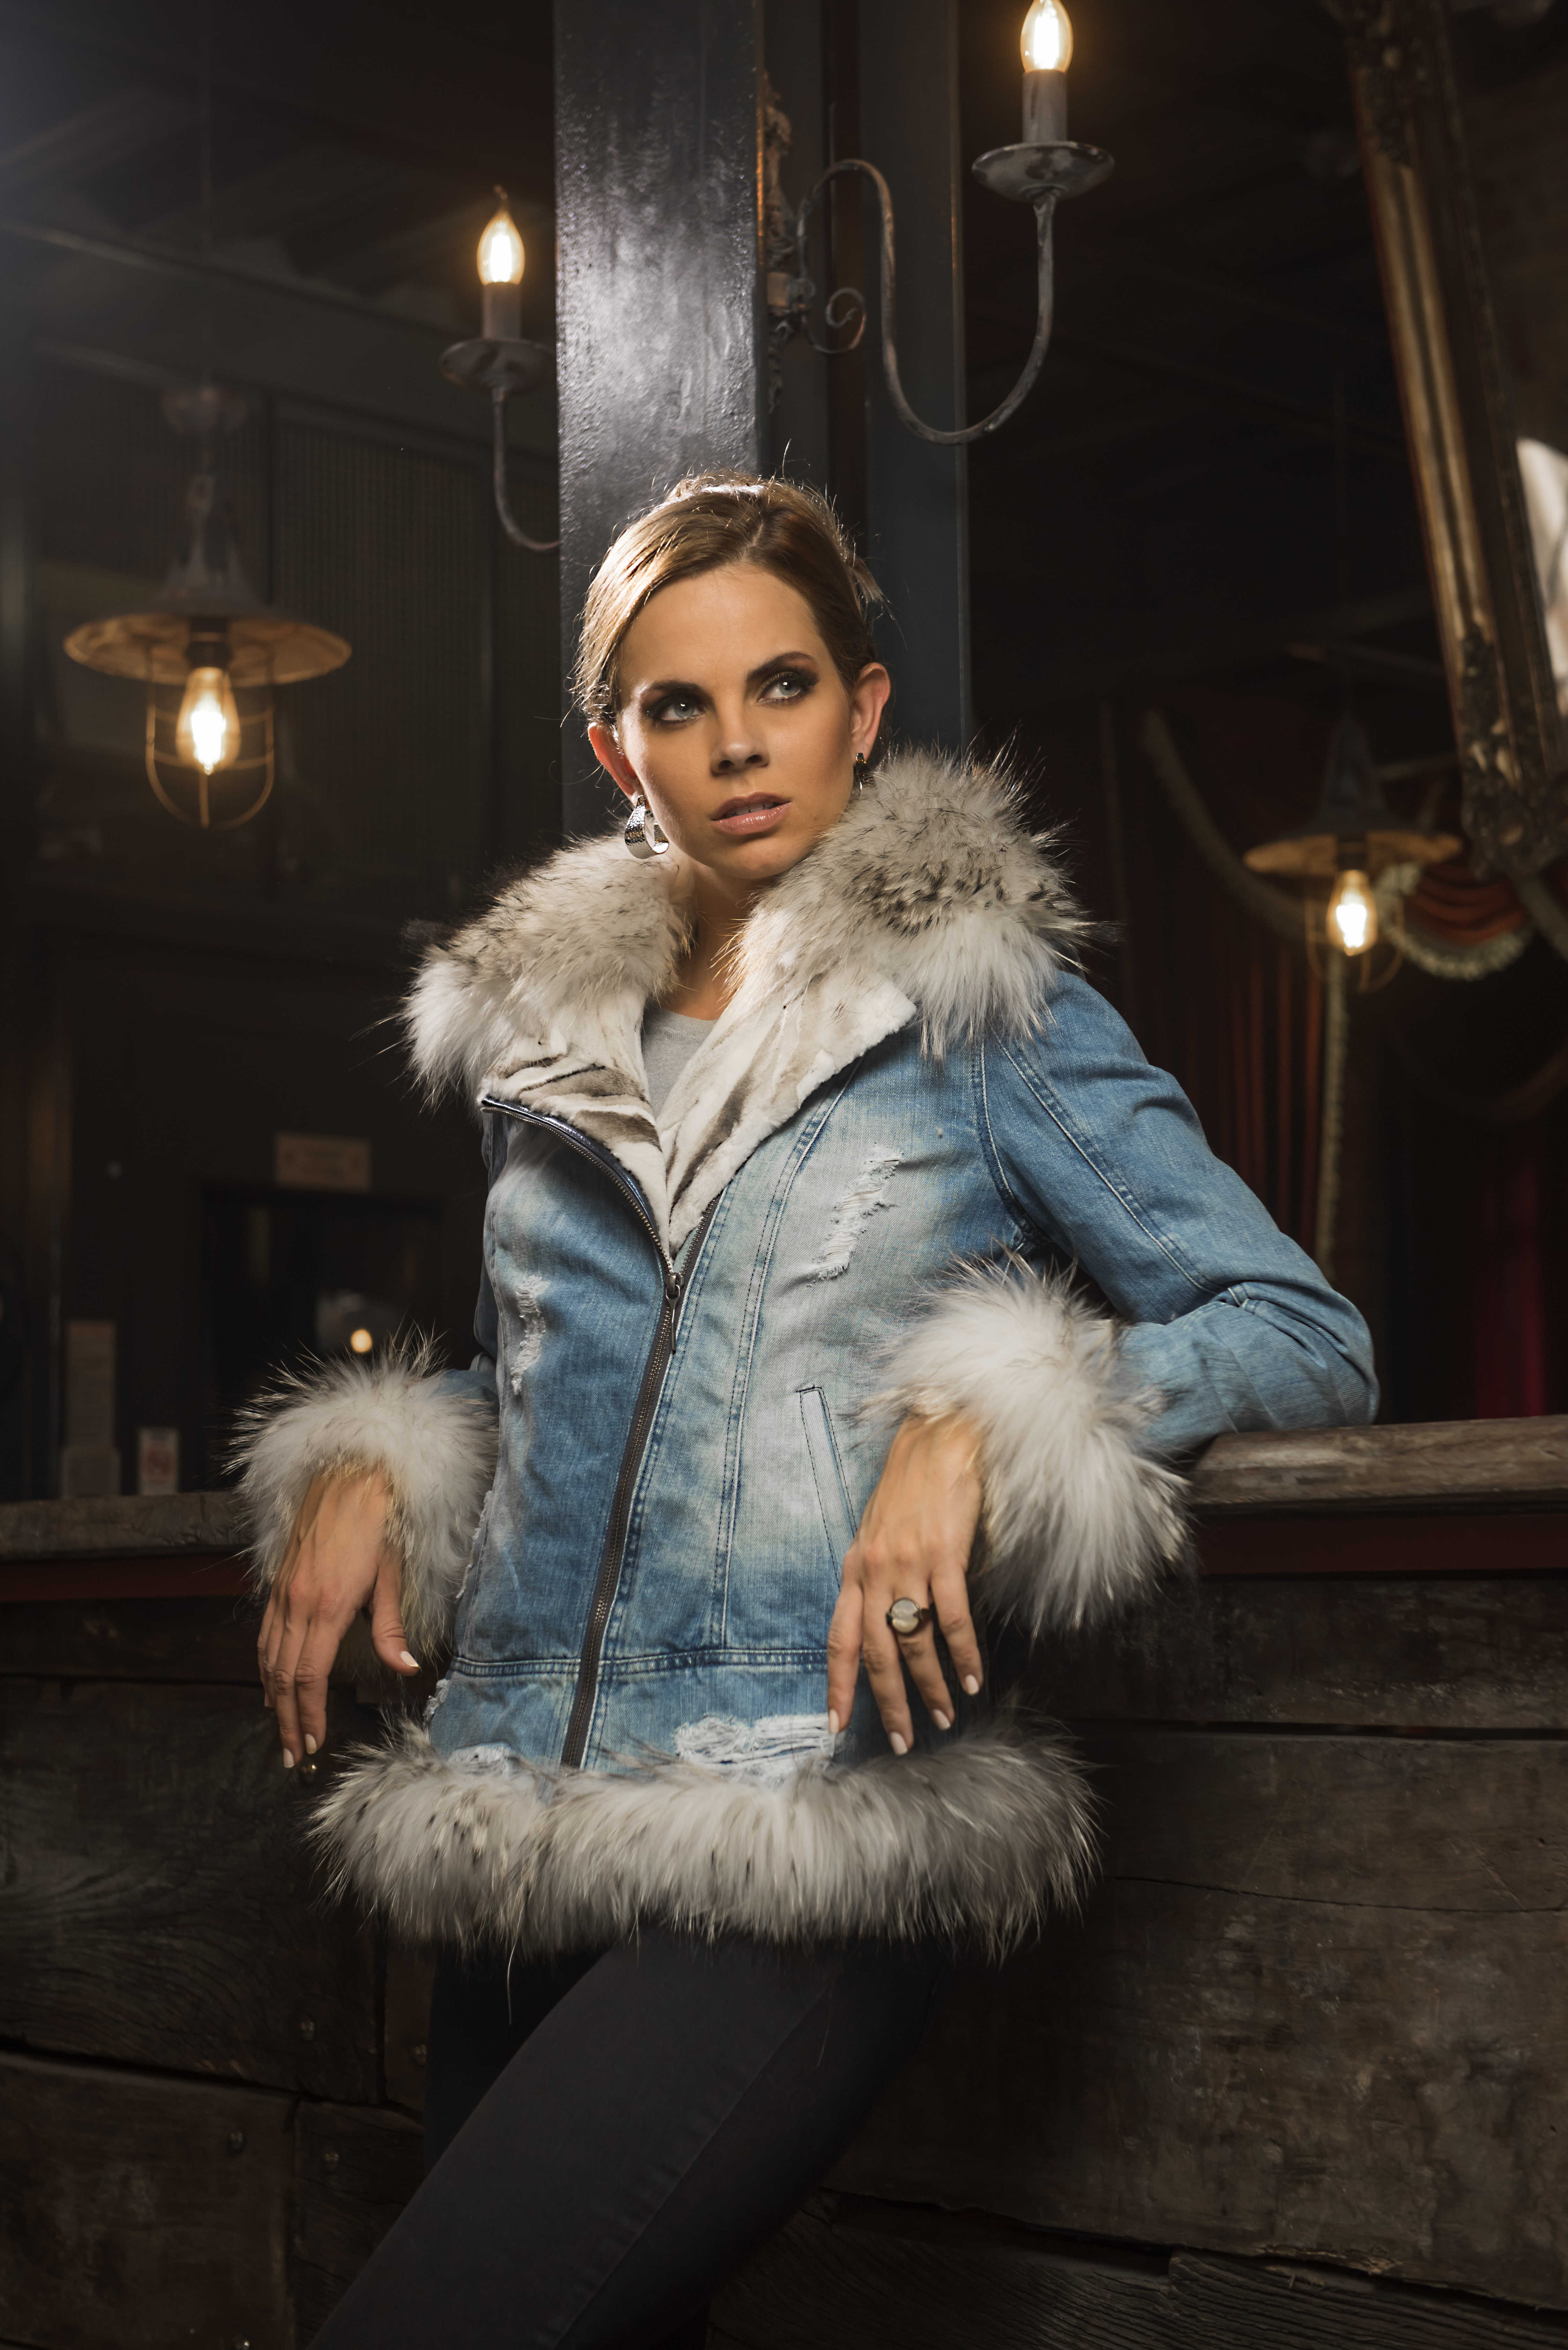 3399af159c16 Fur coats are popular for several reasons, which warrants utmost care and  protection from those who are lucky enough to own them.